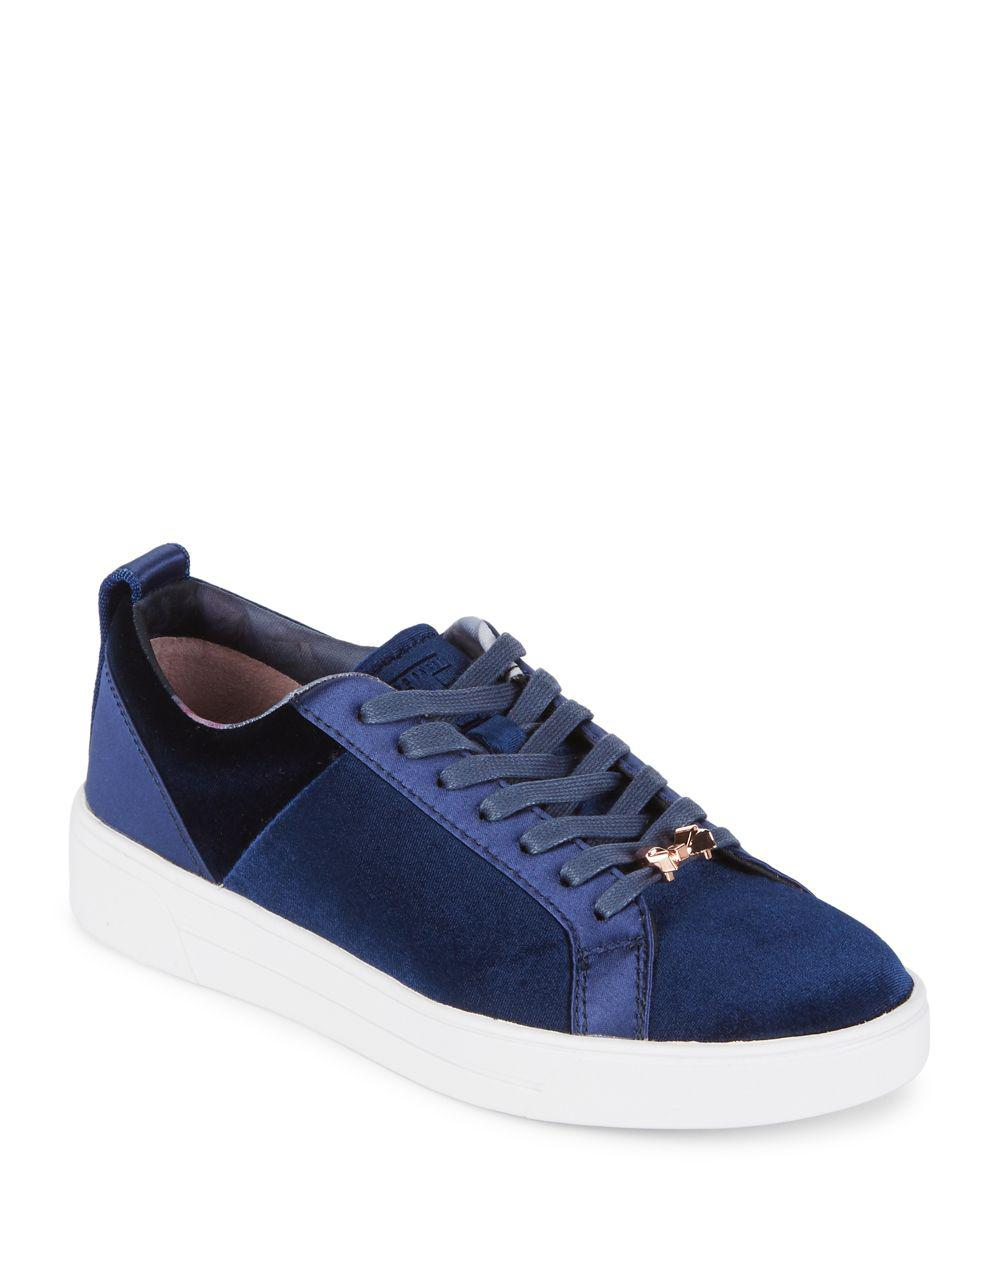 EERIL - Sneaker low - dark blue